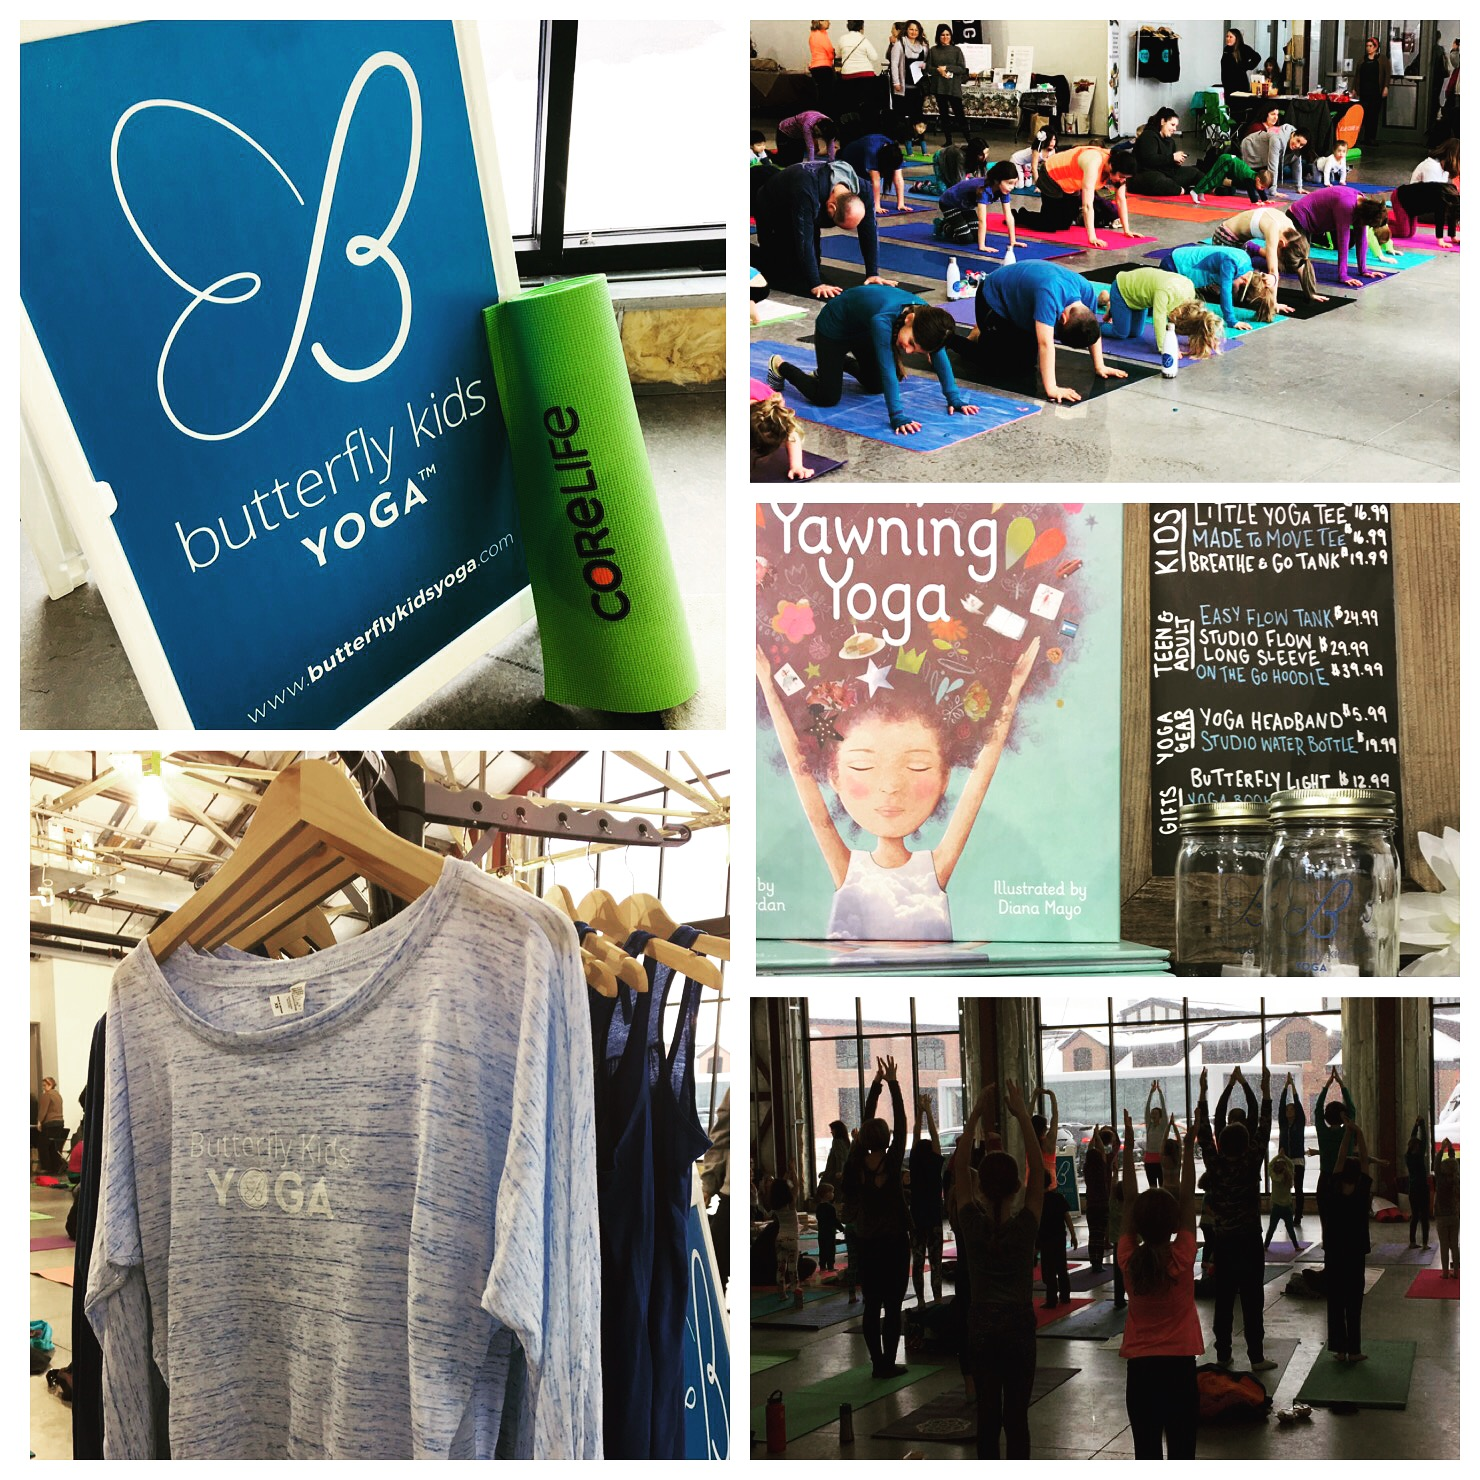 Yoga. Delicious eats. Retail therapy. Good vibes. Great day at CoreLife Eatery's ROC Yoga Fest!